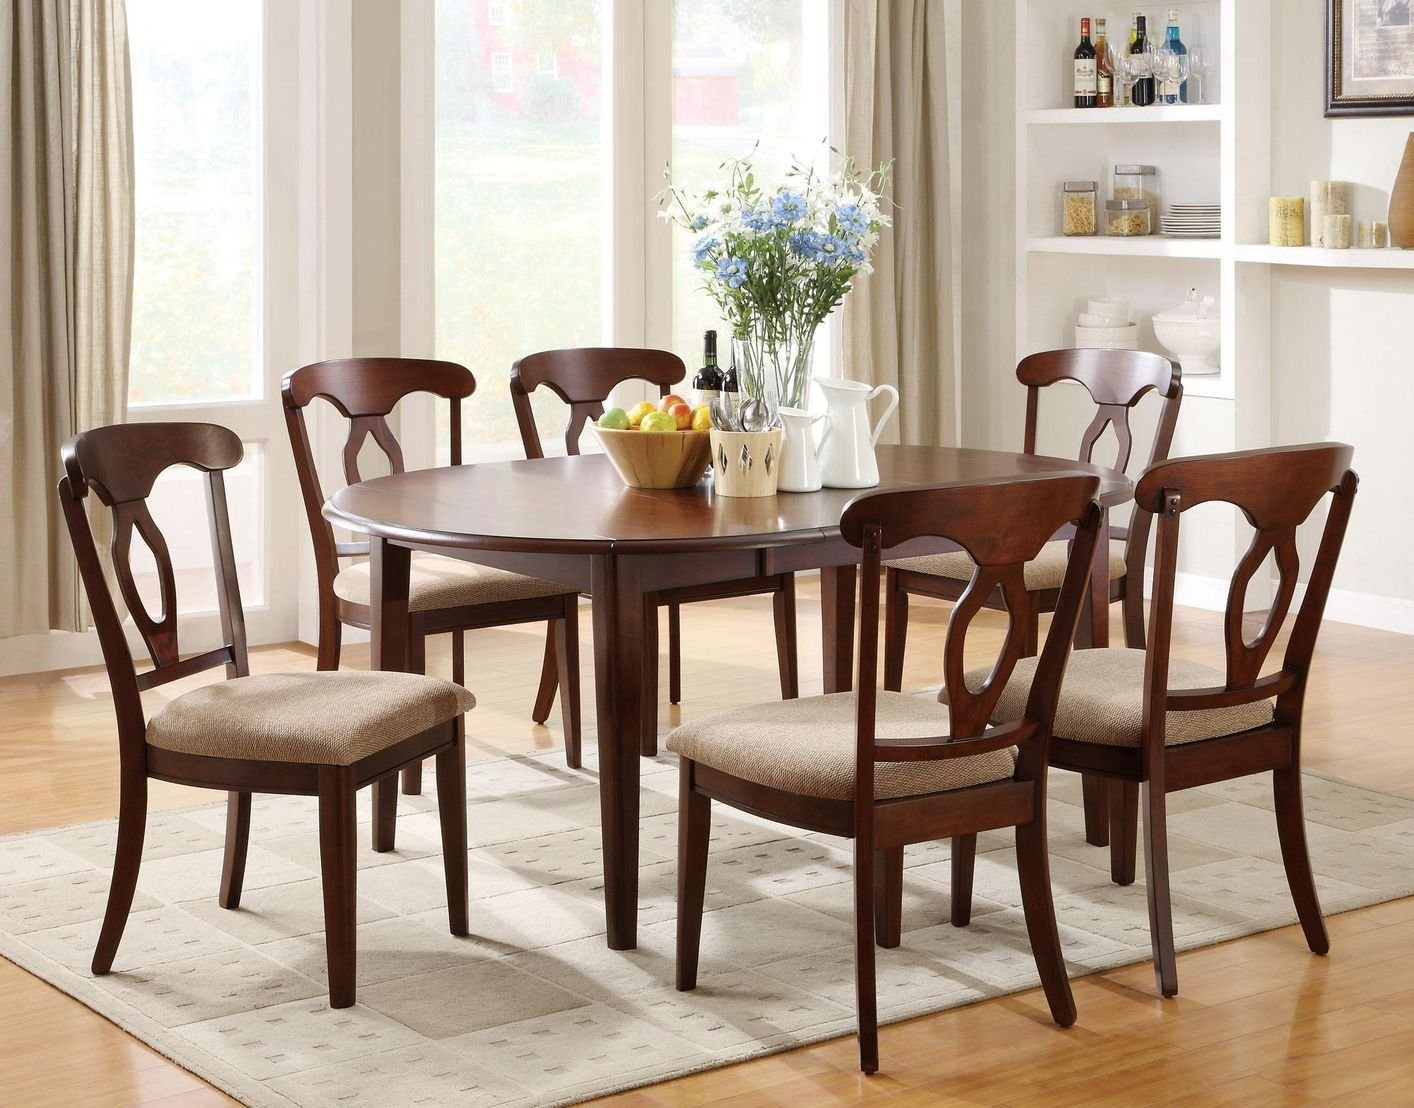 Accommodate An Array Of Dinner Party Sizes With This Versatile Extraordinary Oval Dining Room Table And Chairs Inspiration